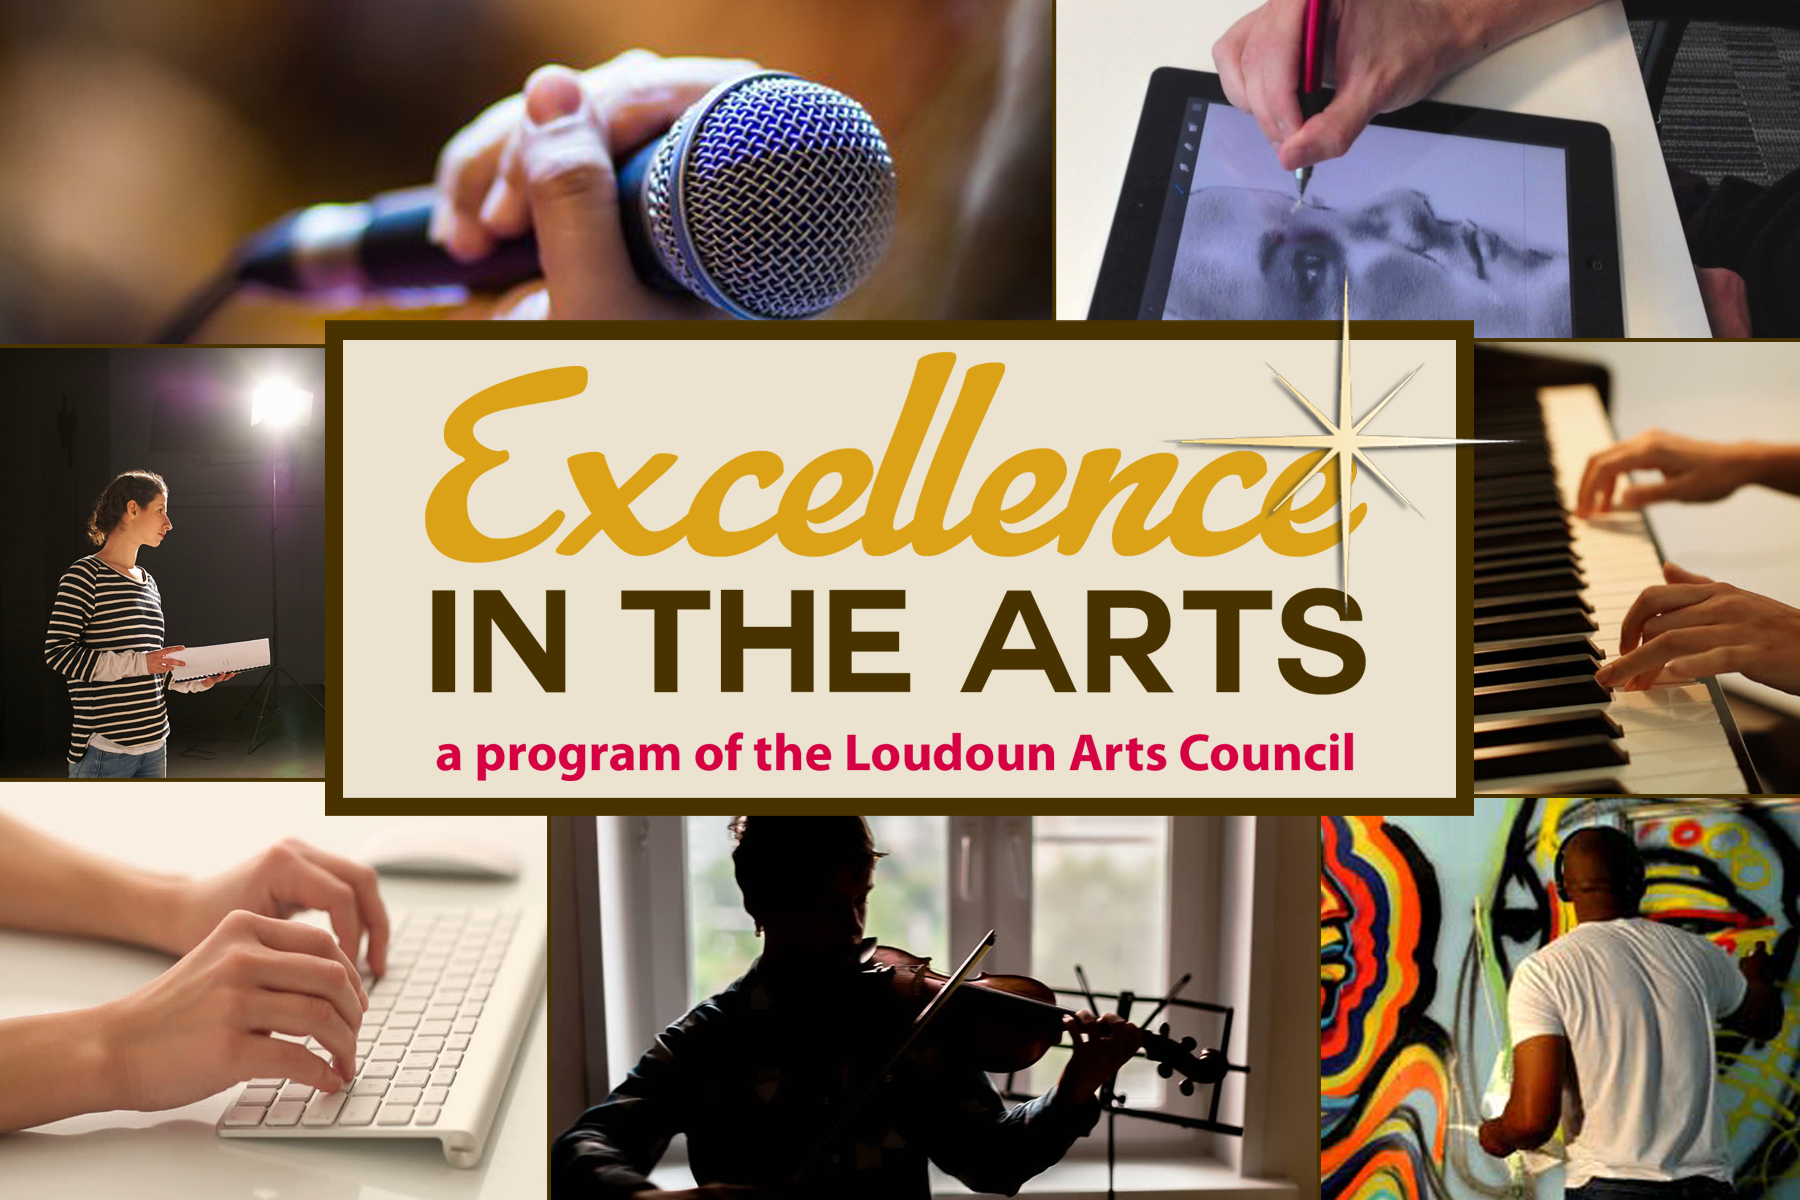 Excellence is an awards program for young visual, performing, and literary artists